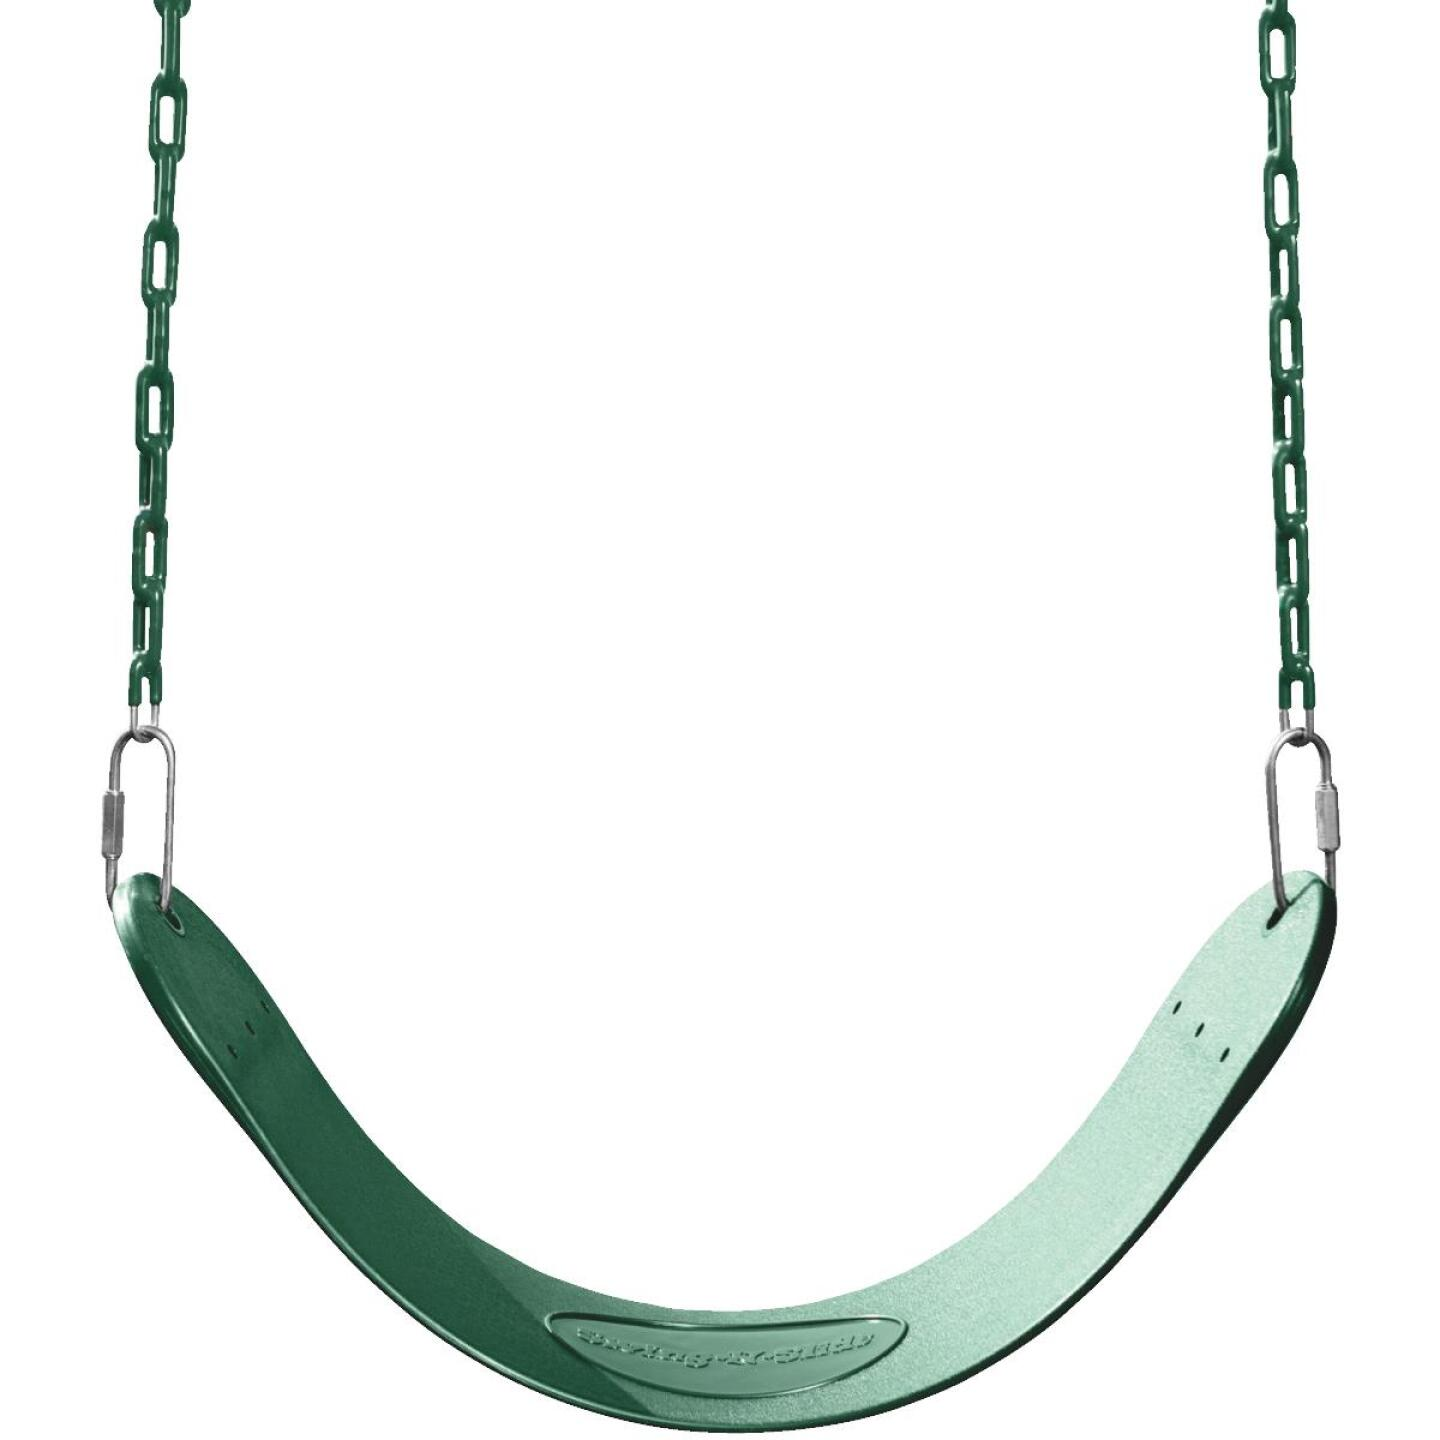 Swing N Slide Curved Oval Green Swing Seat Image 1